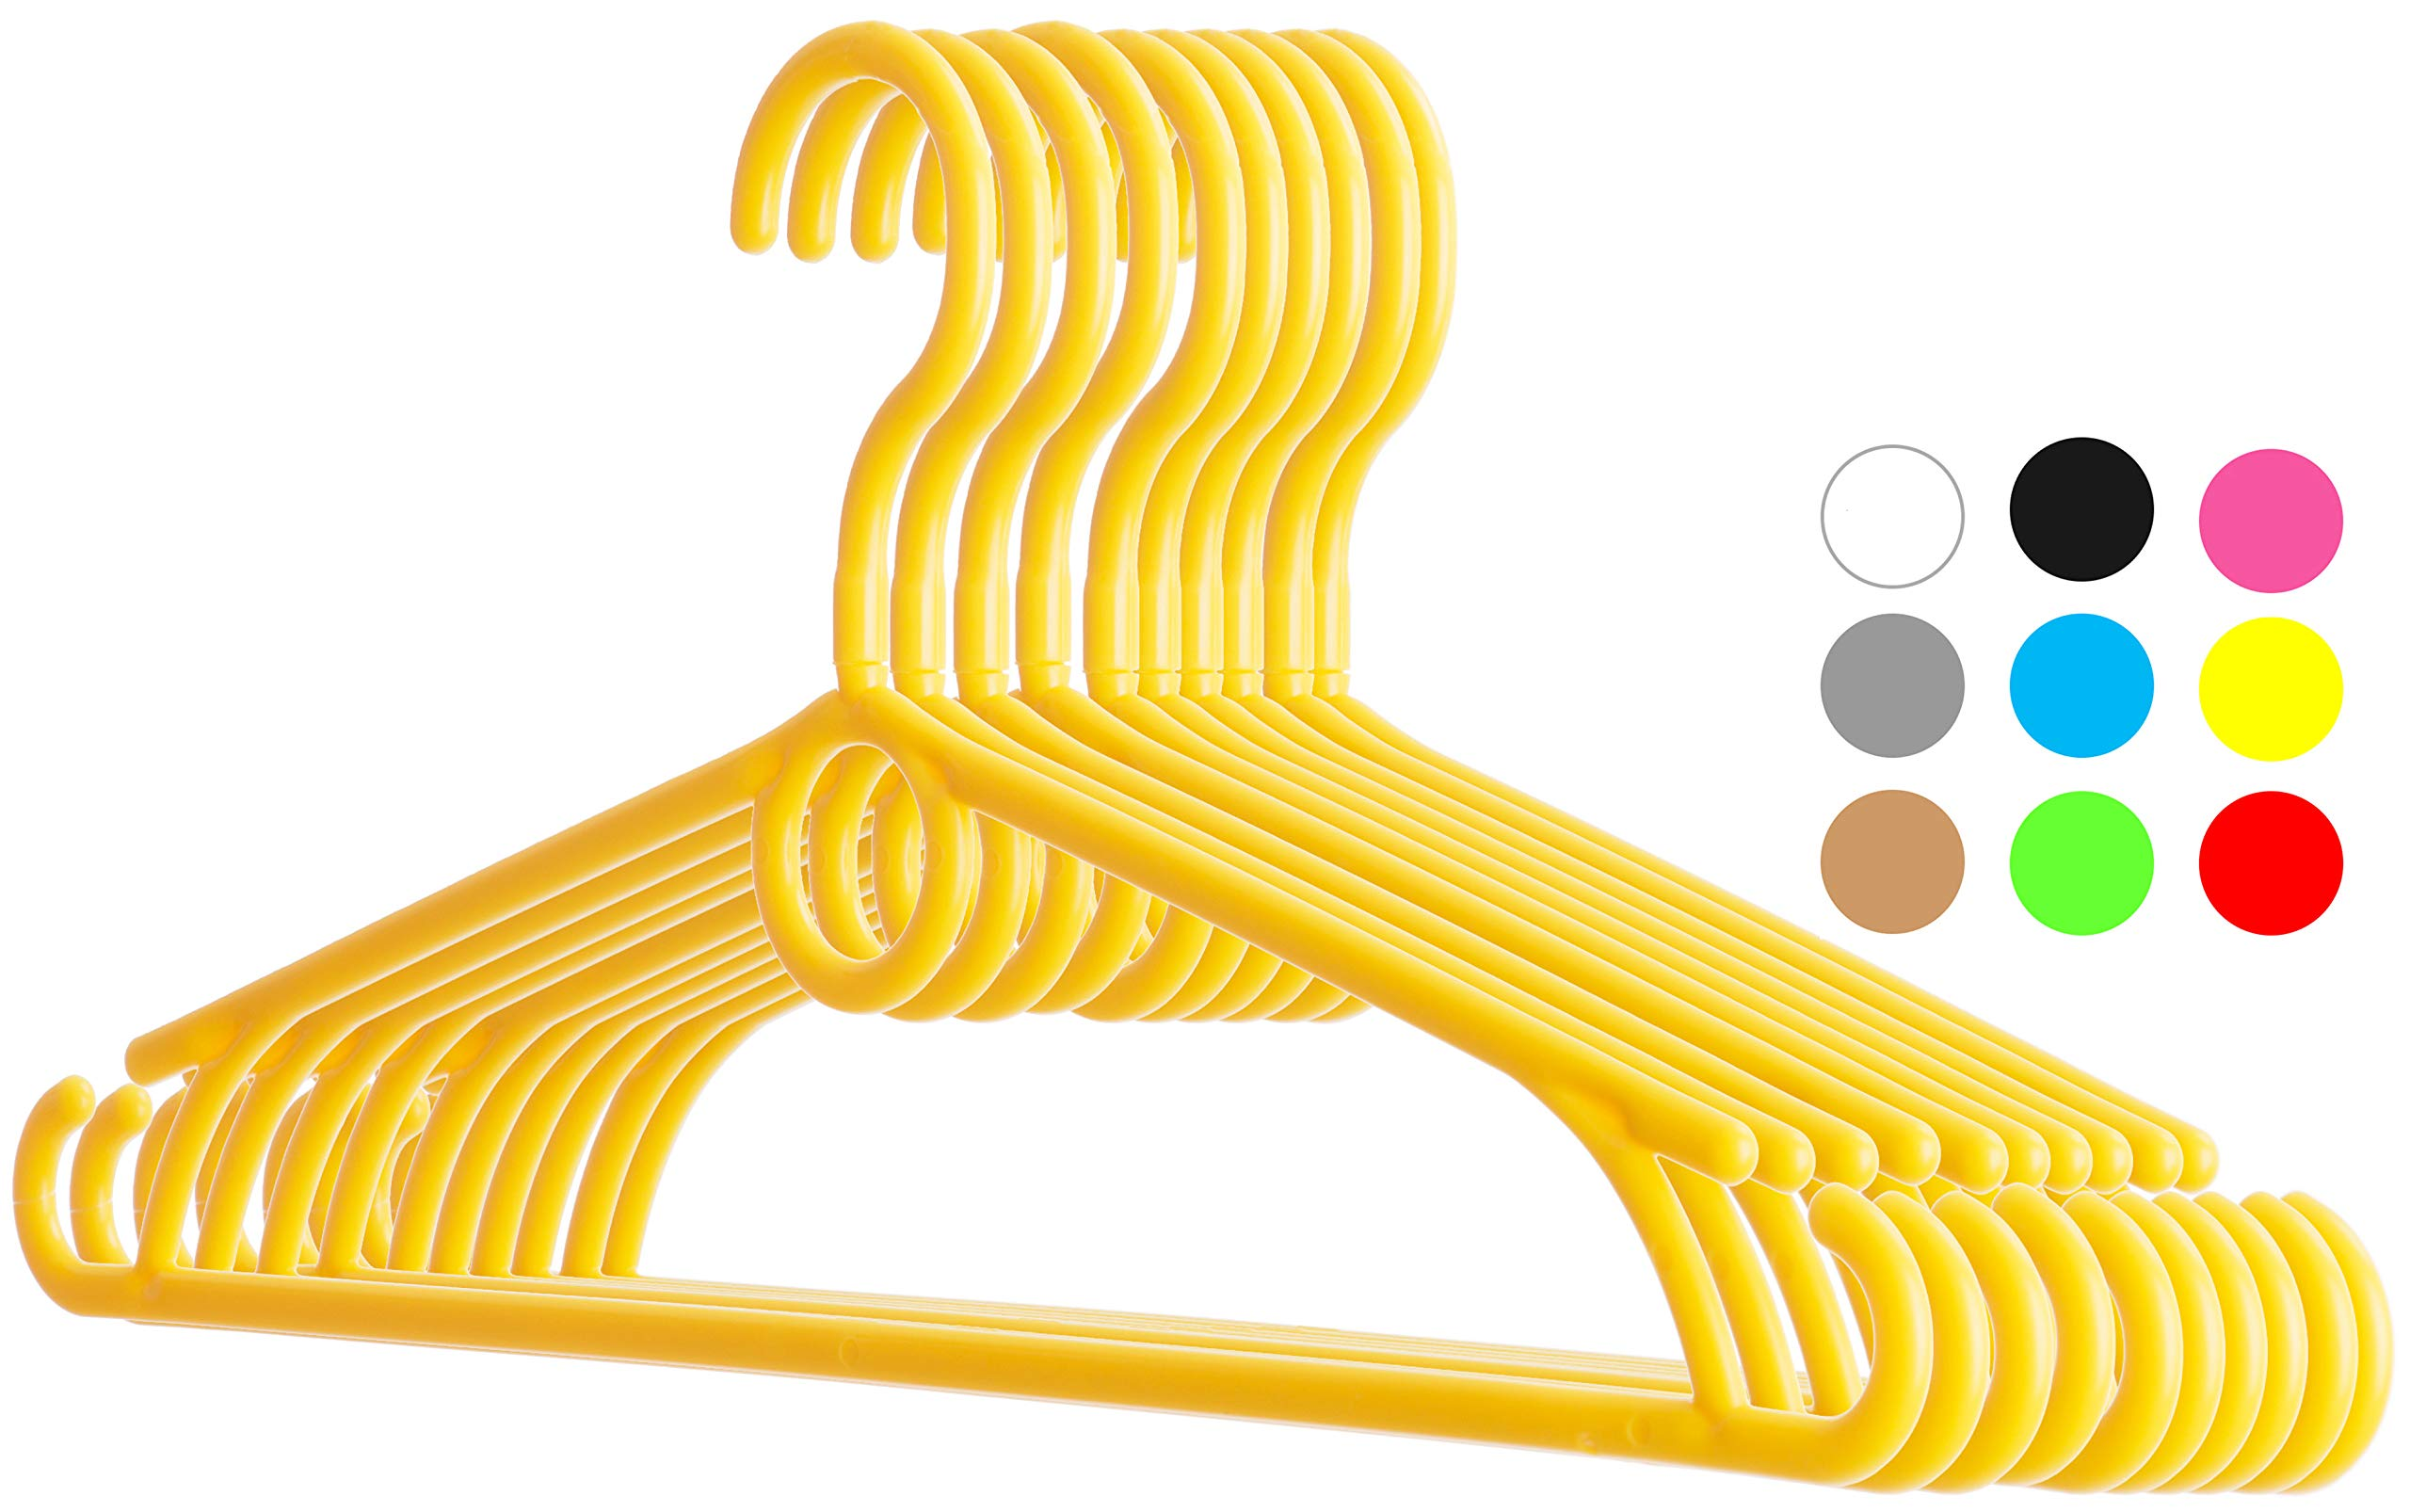 Dream-home Childrens Plastic Clothes Hangers - 12.6'' Wide - 360° Swivel Hook - Strong & Durable - Side Hooks for Spaghettis & Baby Dresses, Loop for Cascading or Kids Accessories - Set of 20 - Yellow